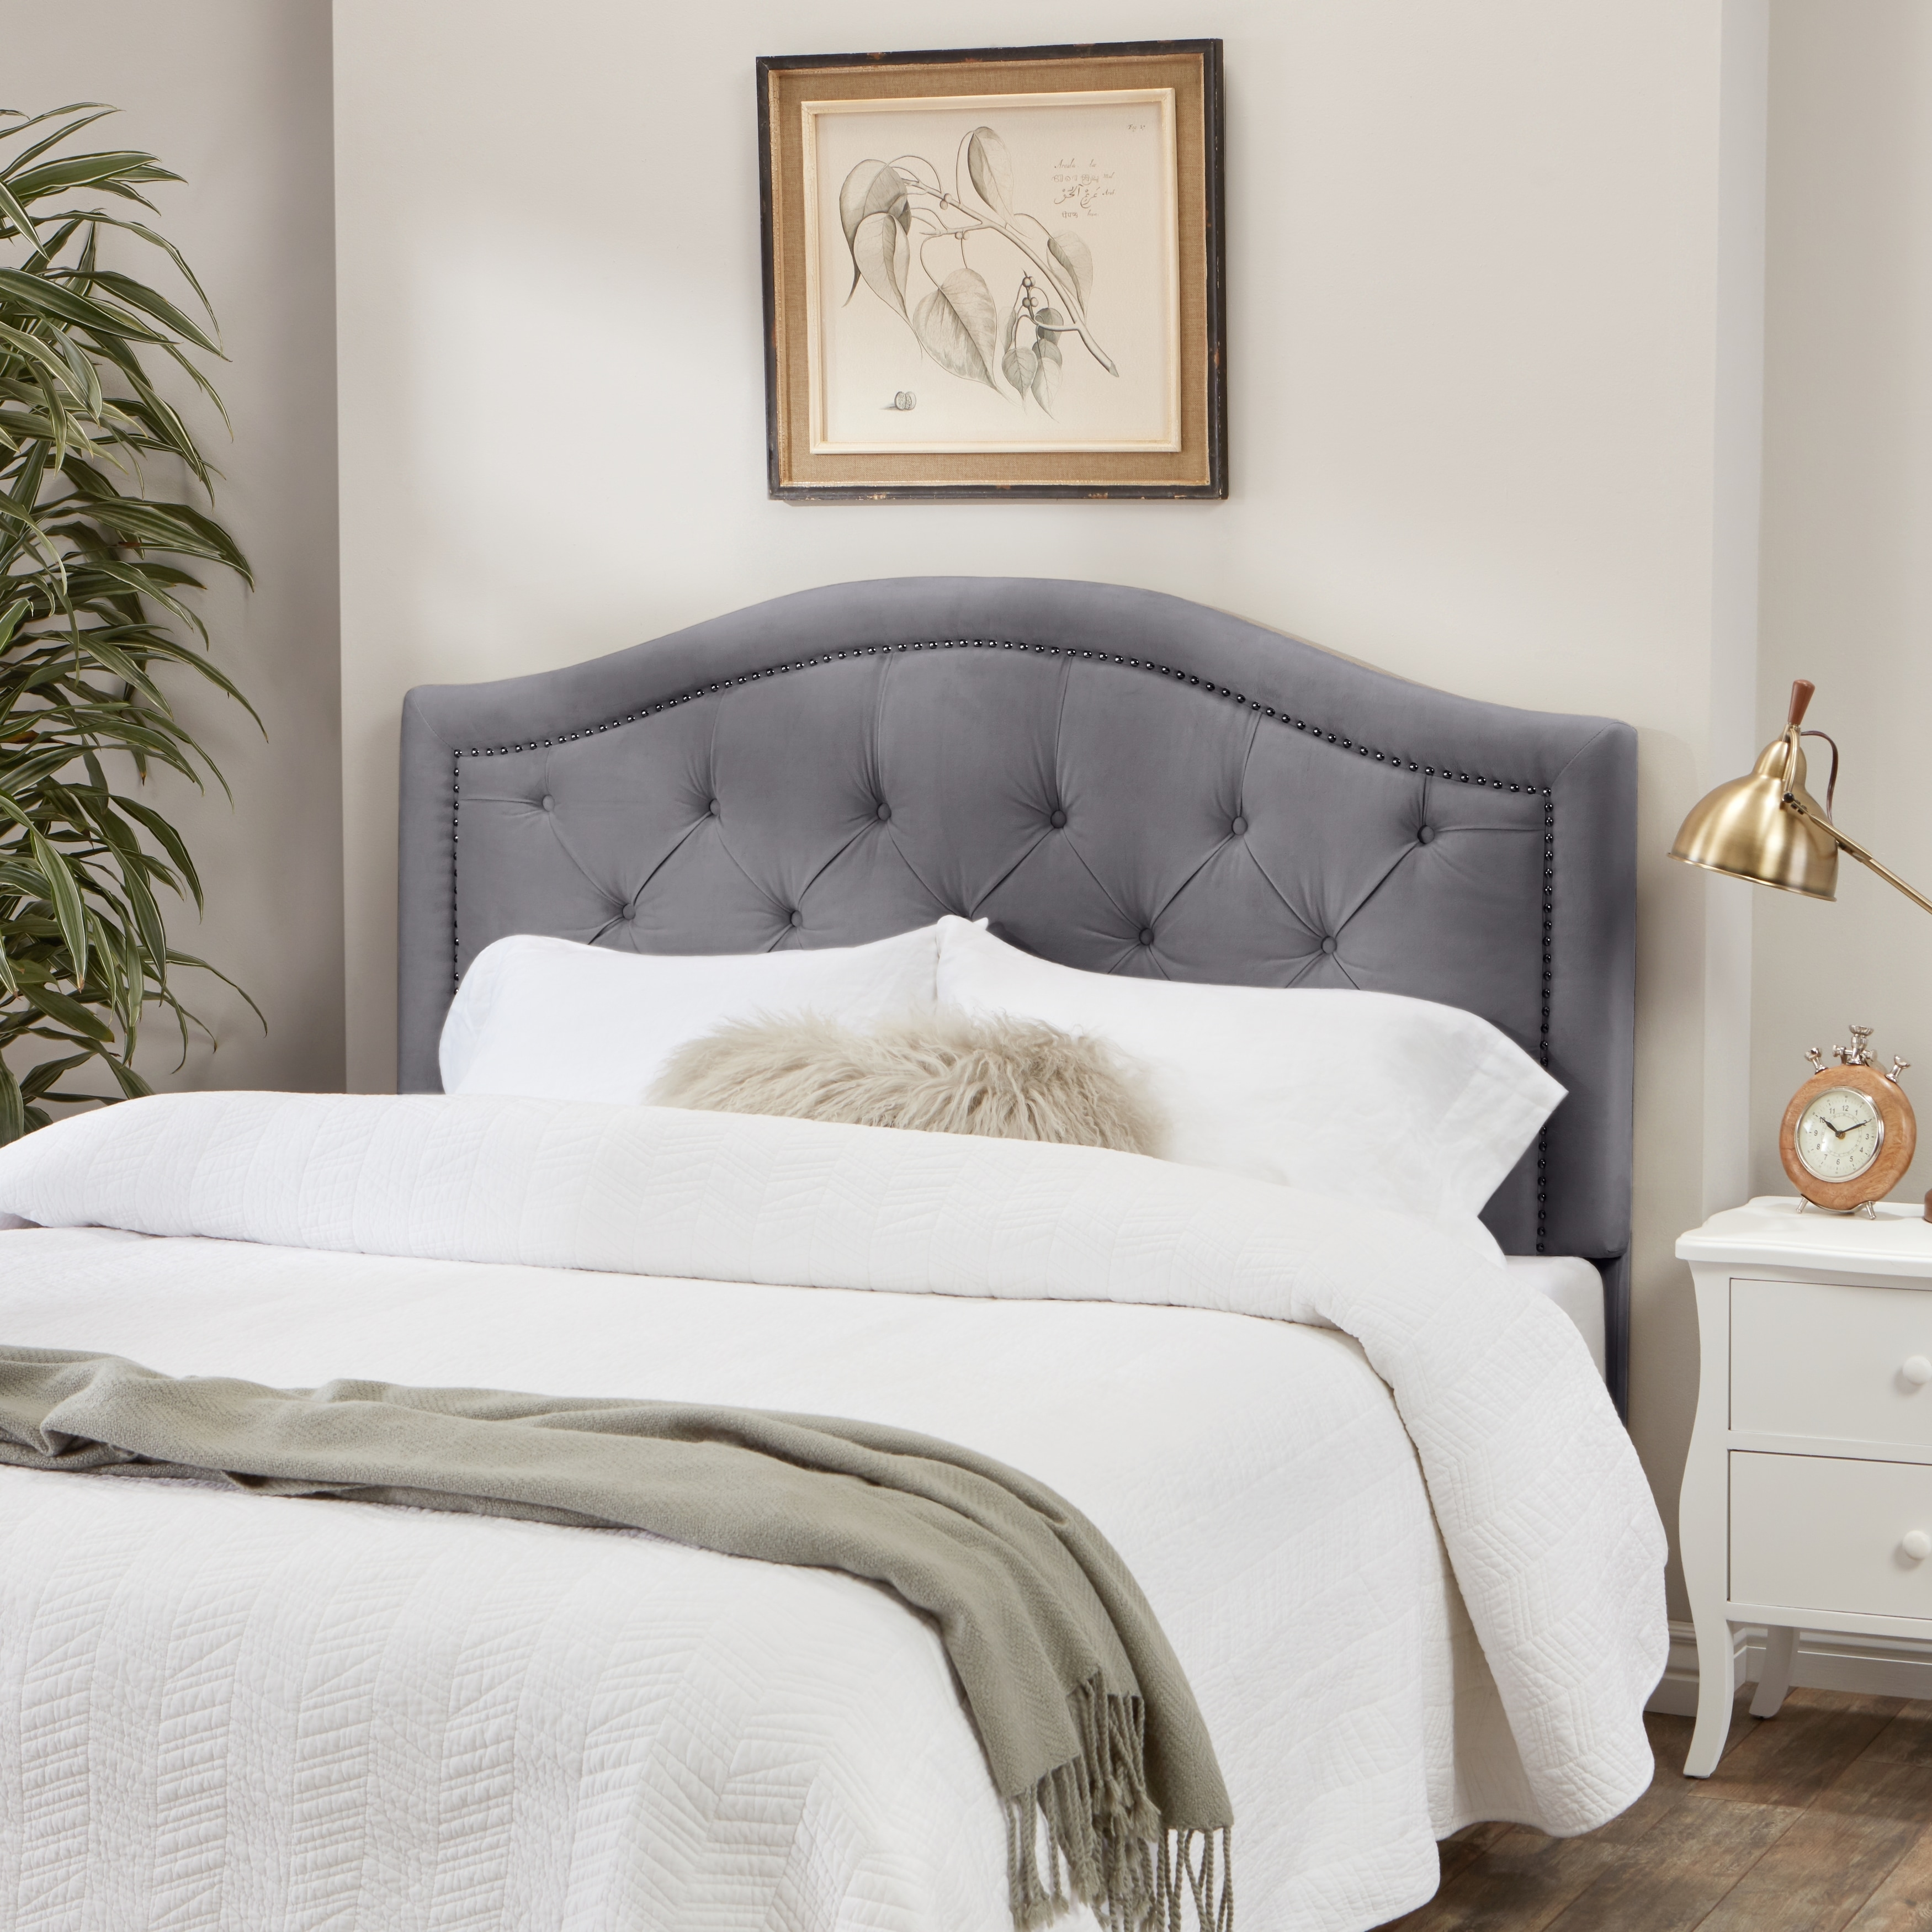 dawnwatson headboards full frame dark padded headboard profile low me only from king of for custom bedroom beds made awesome grey beautiful and cheap bedrooms size upholstered